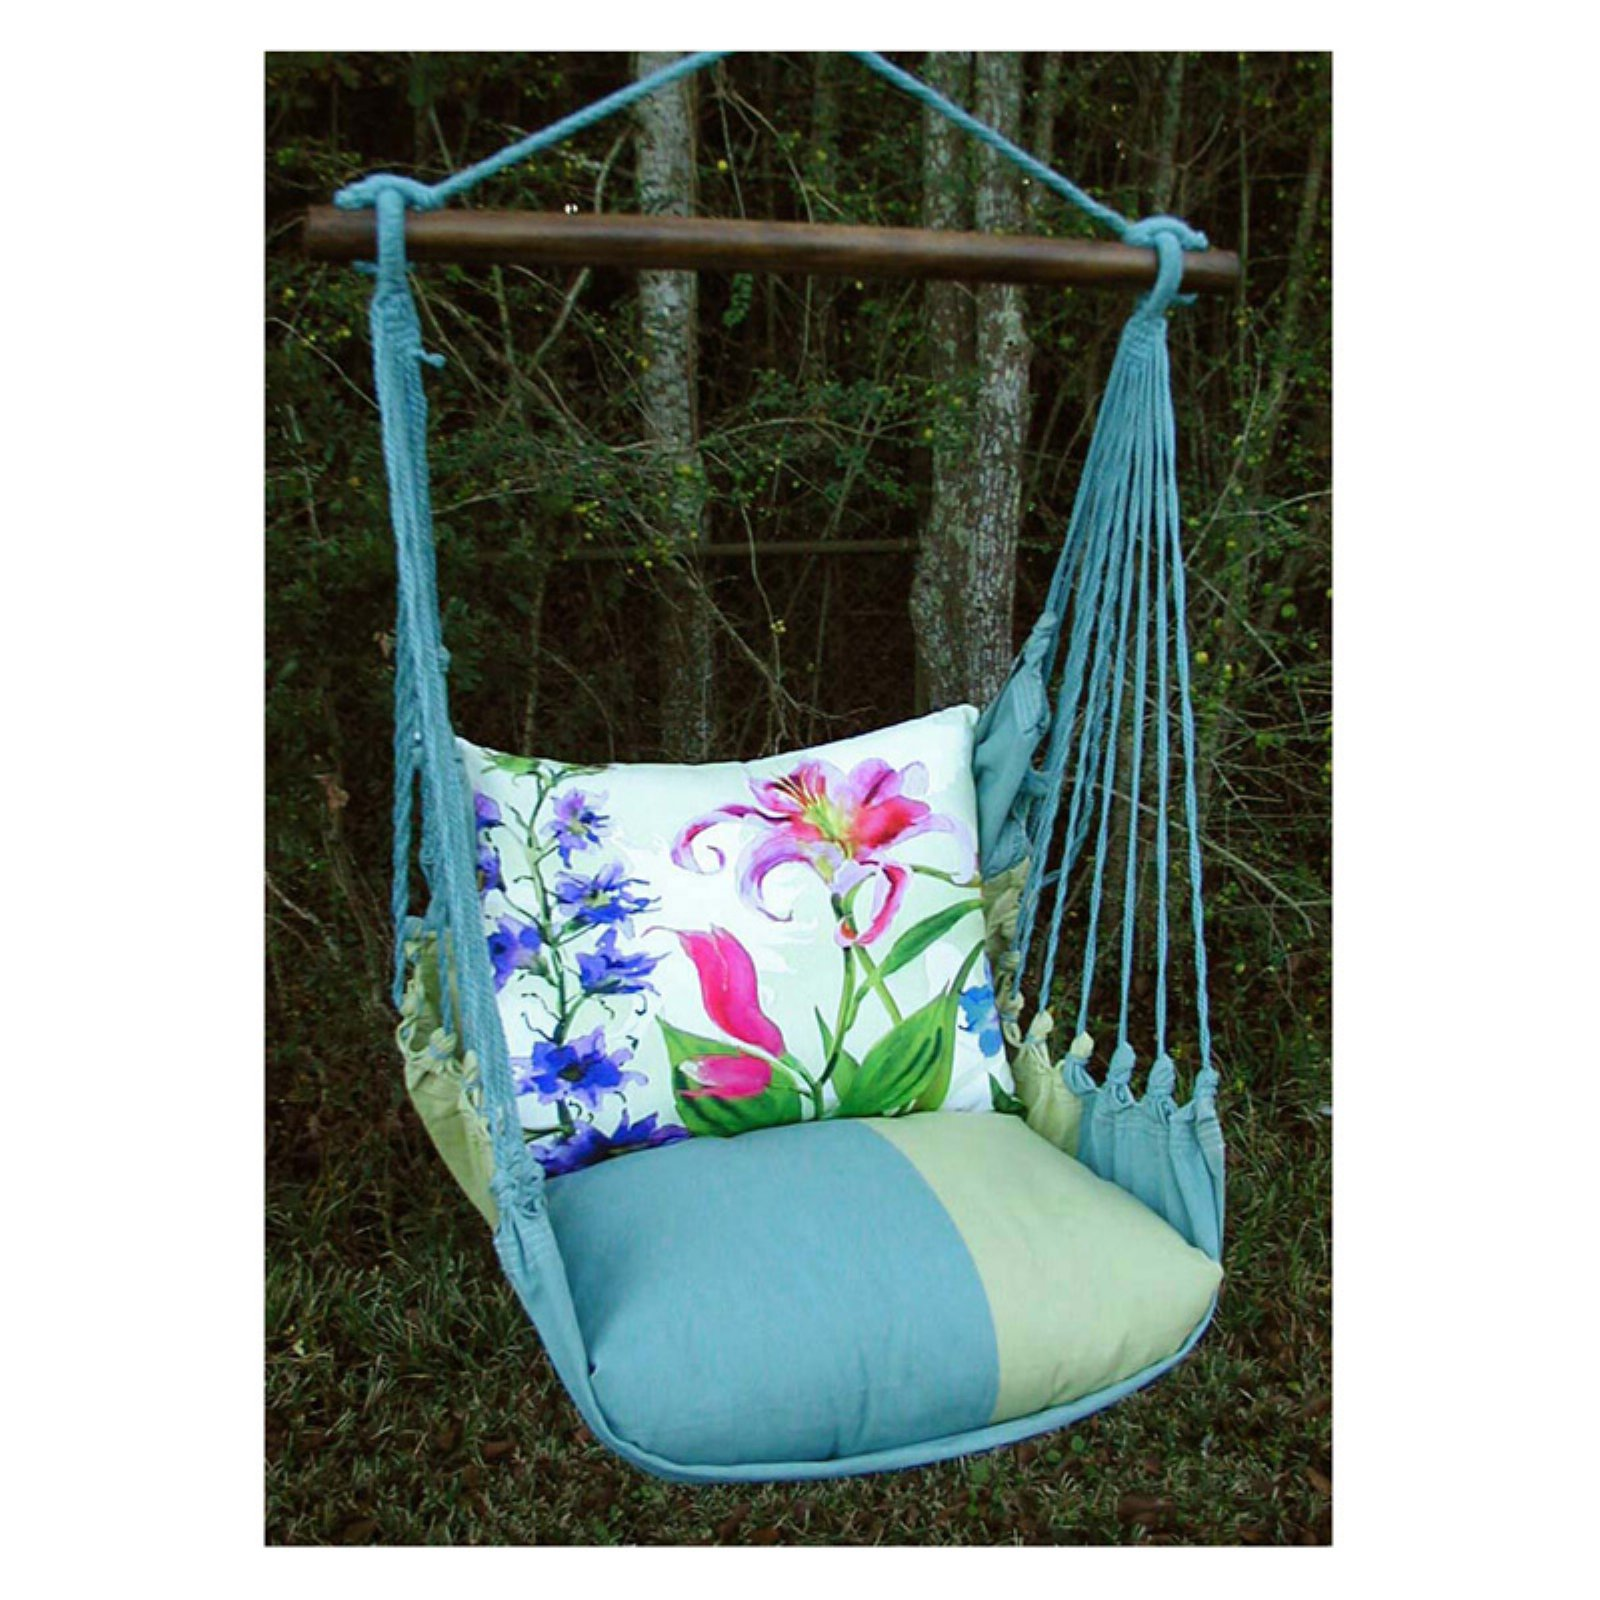 Magnolia Casual Meadow Mist Hammock Chair and Pillow Set